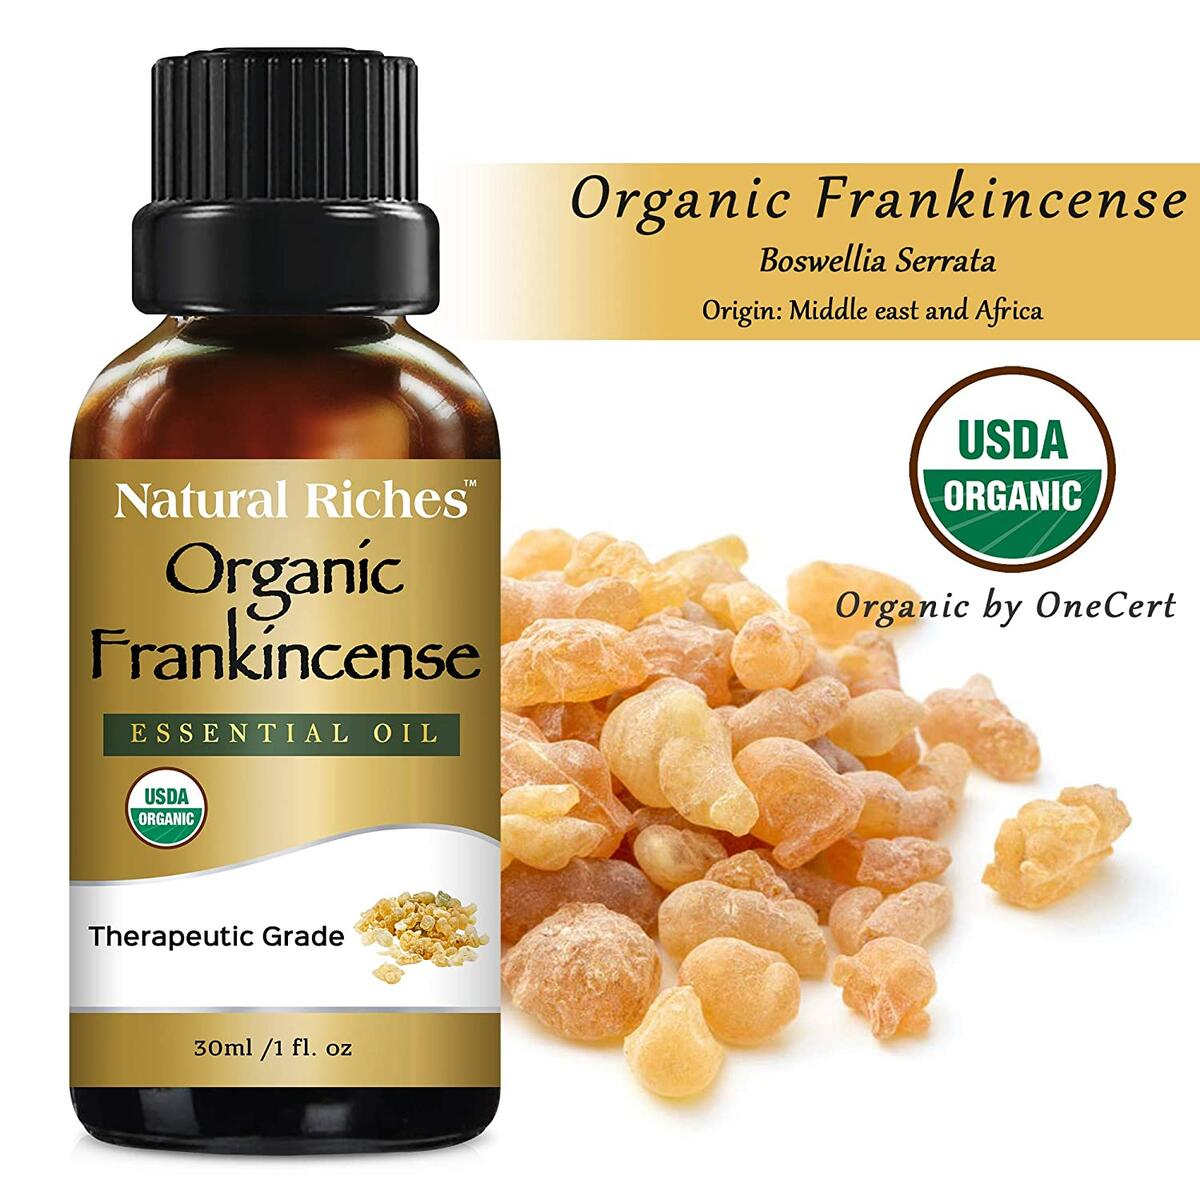 USDA Organic Frankincense Essential Oil - Boswellia Serrata,